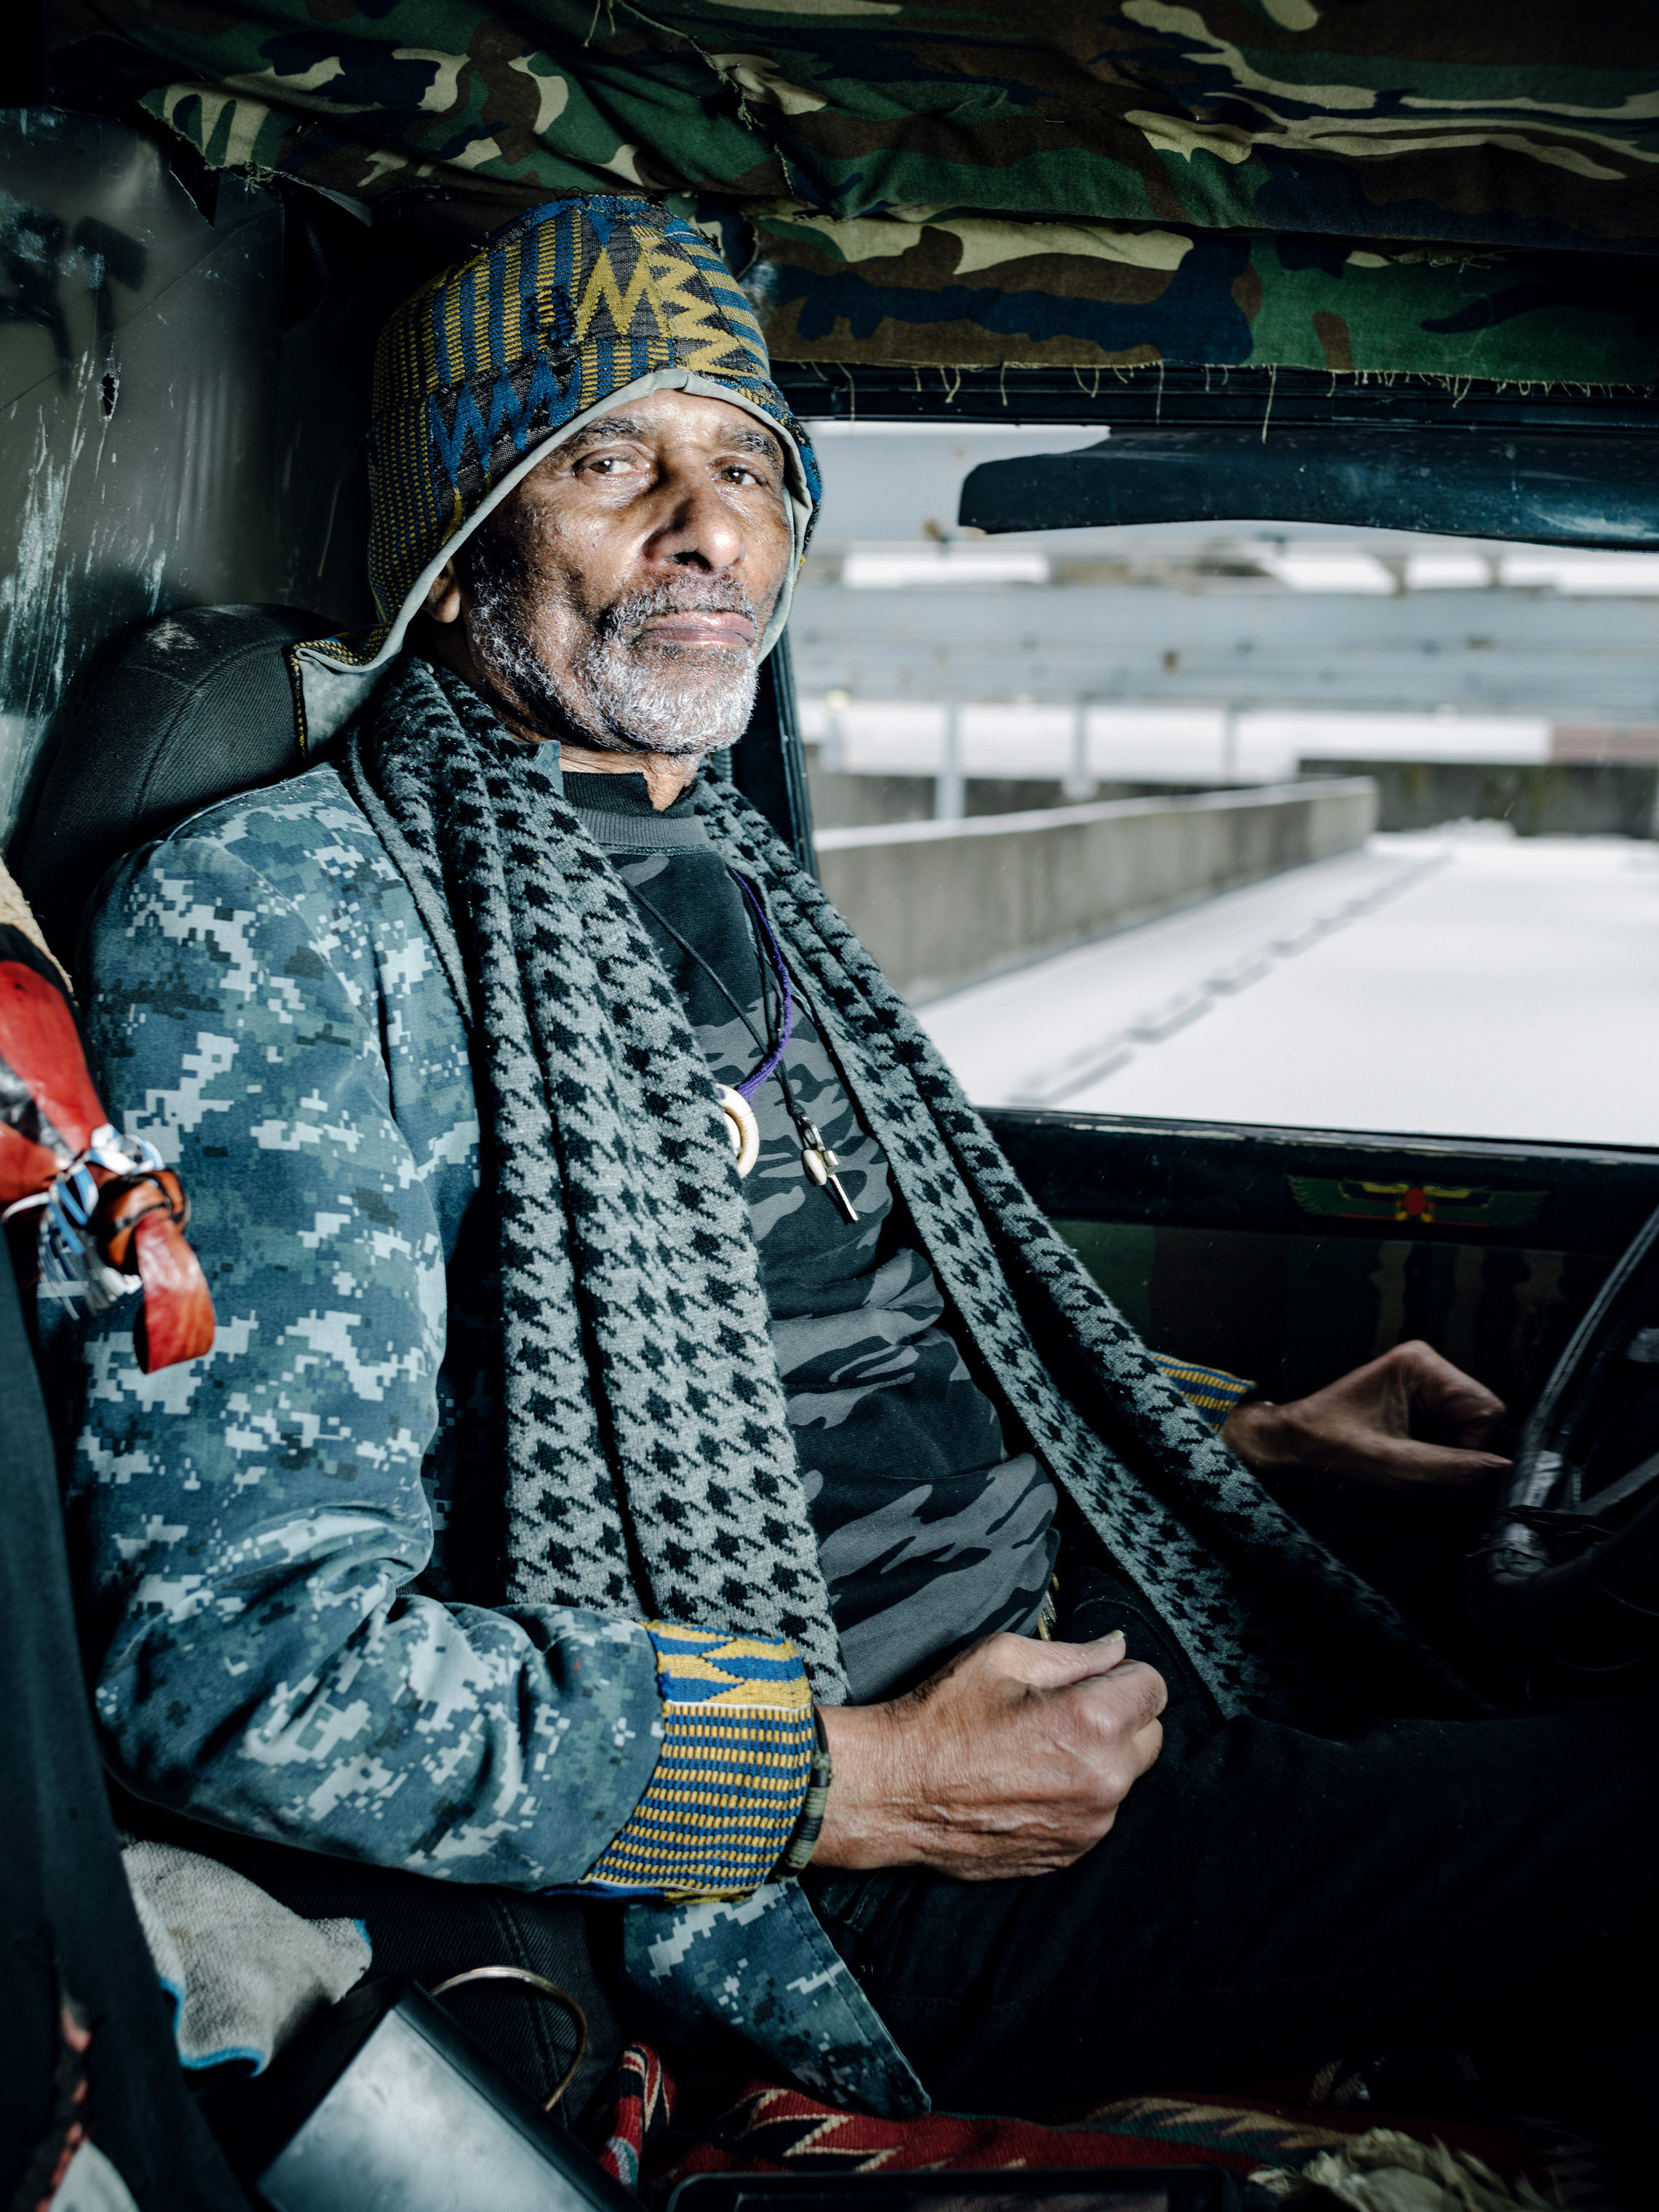 William  Tony  Maynard in Co-op City, Bronx, N.Y., on Feb. 20, sitting in the beloved Jeep that he has called home during road-trips nationwide.